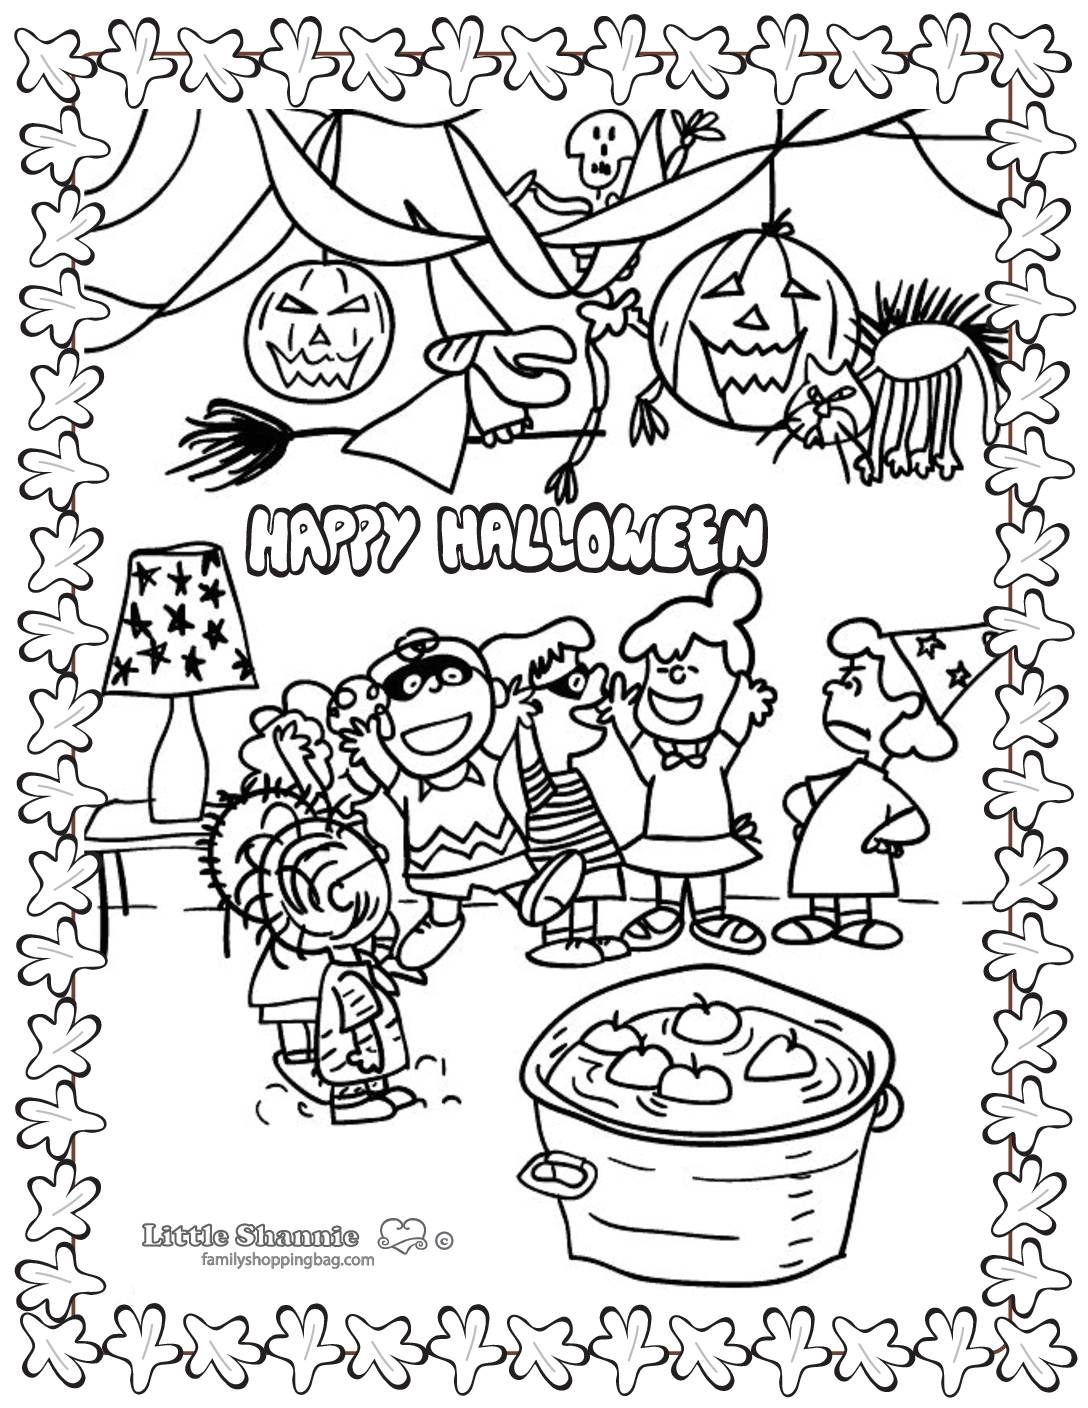 Coloring Page 5 Peanuts Halloween